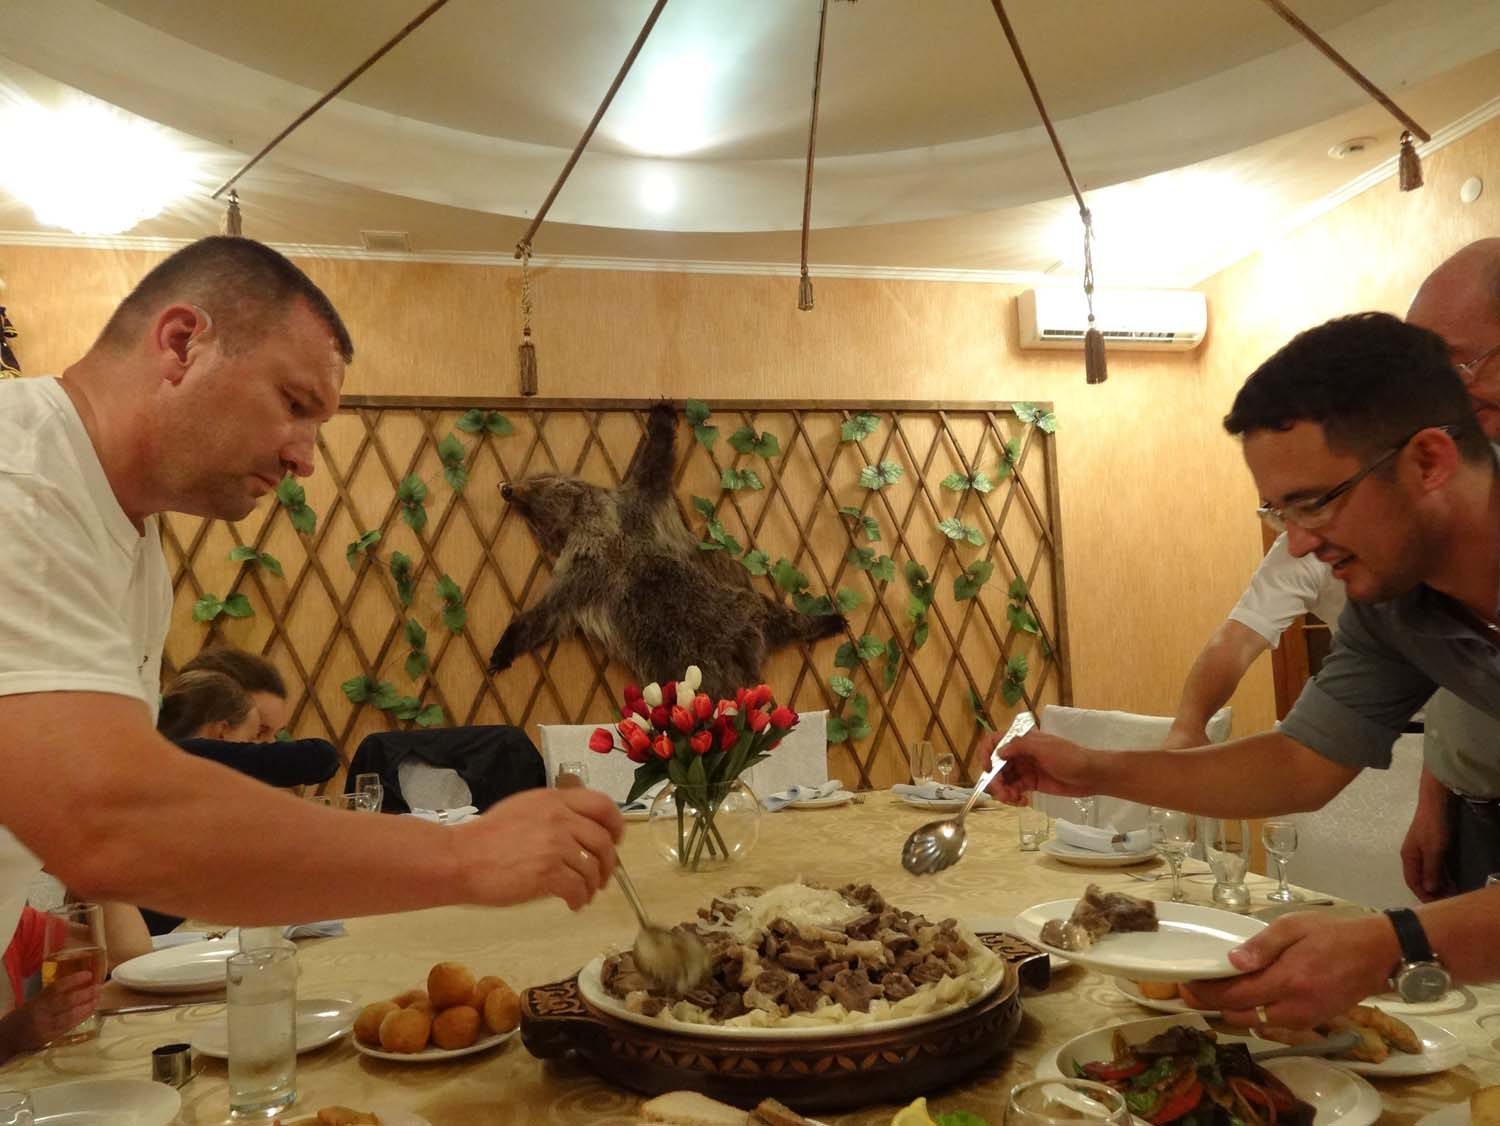 traditional Kazakh meal - Beshbarmak with Baurzhan and a few other members of his family